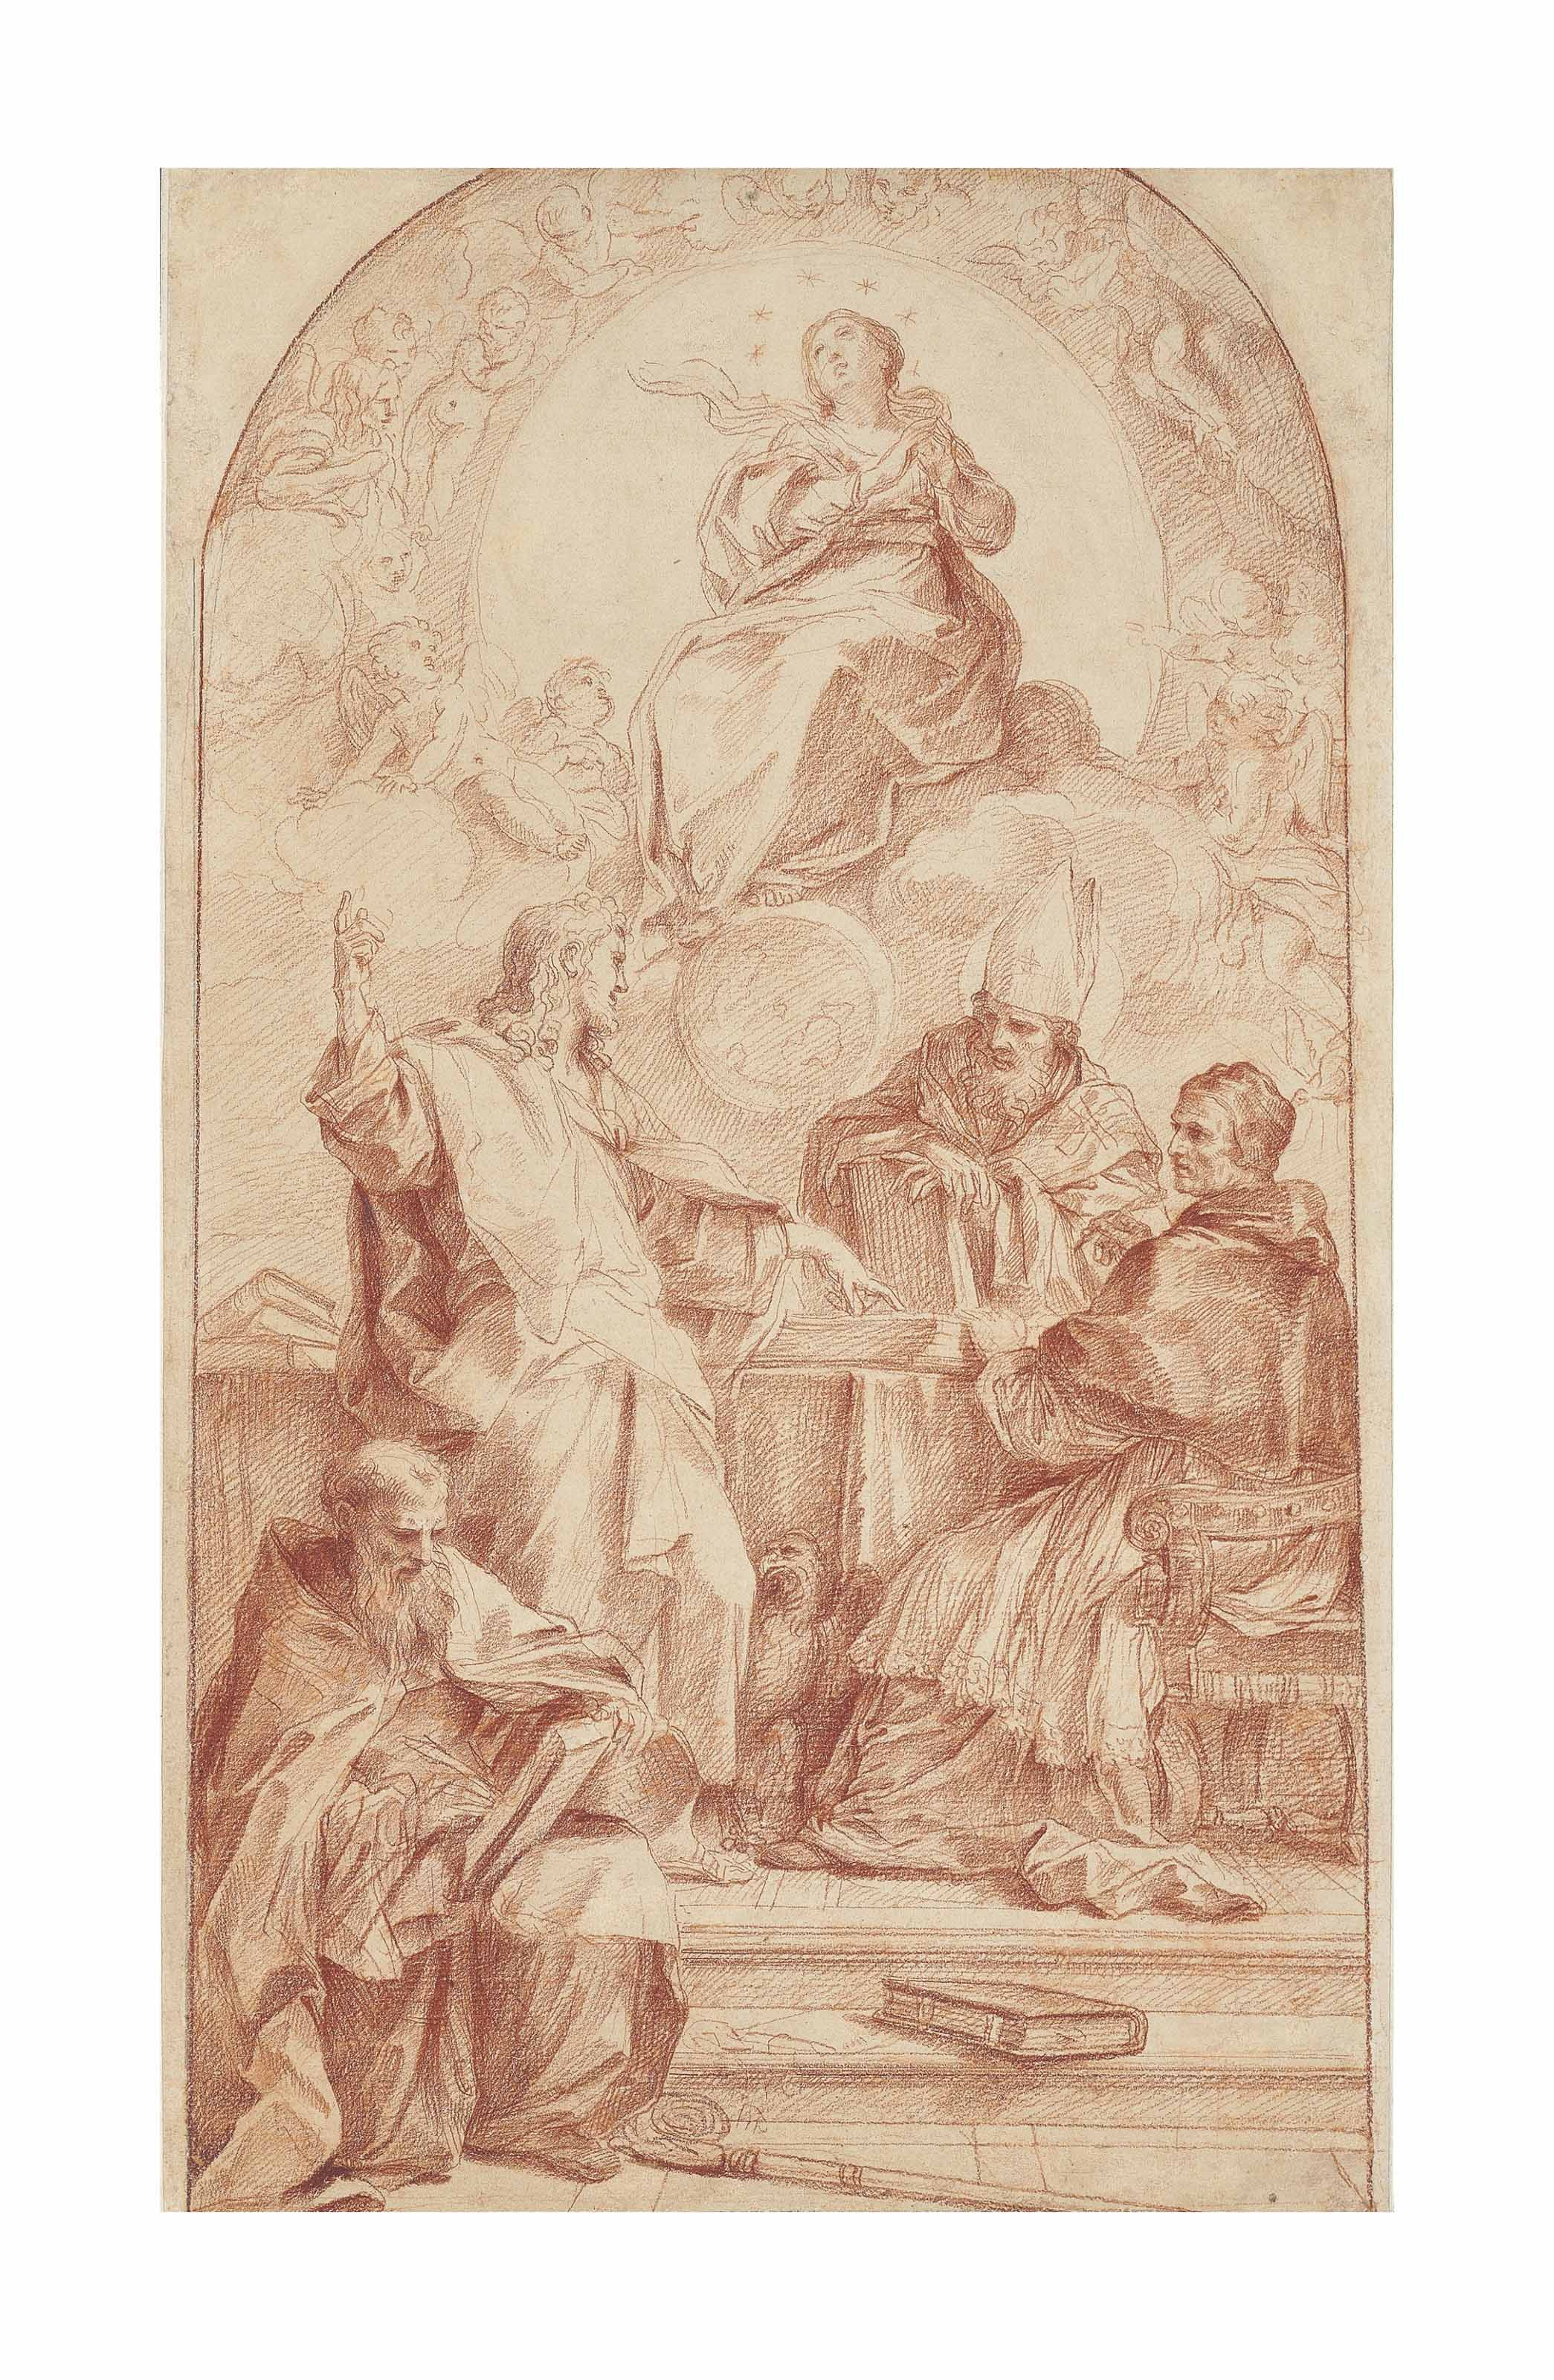 Saint John the Evangelist disputing the Doctrine of the Immaculate Conception with Saints Gregory, Augustine and John Chrysostom